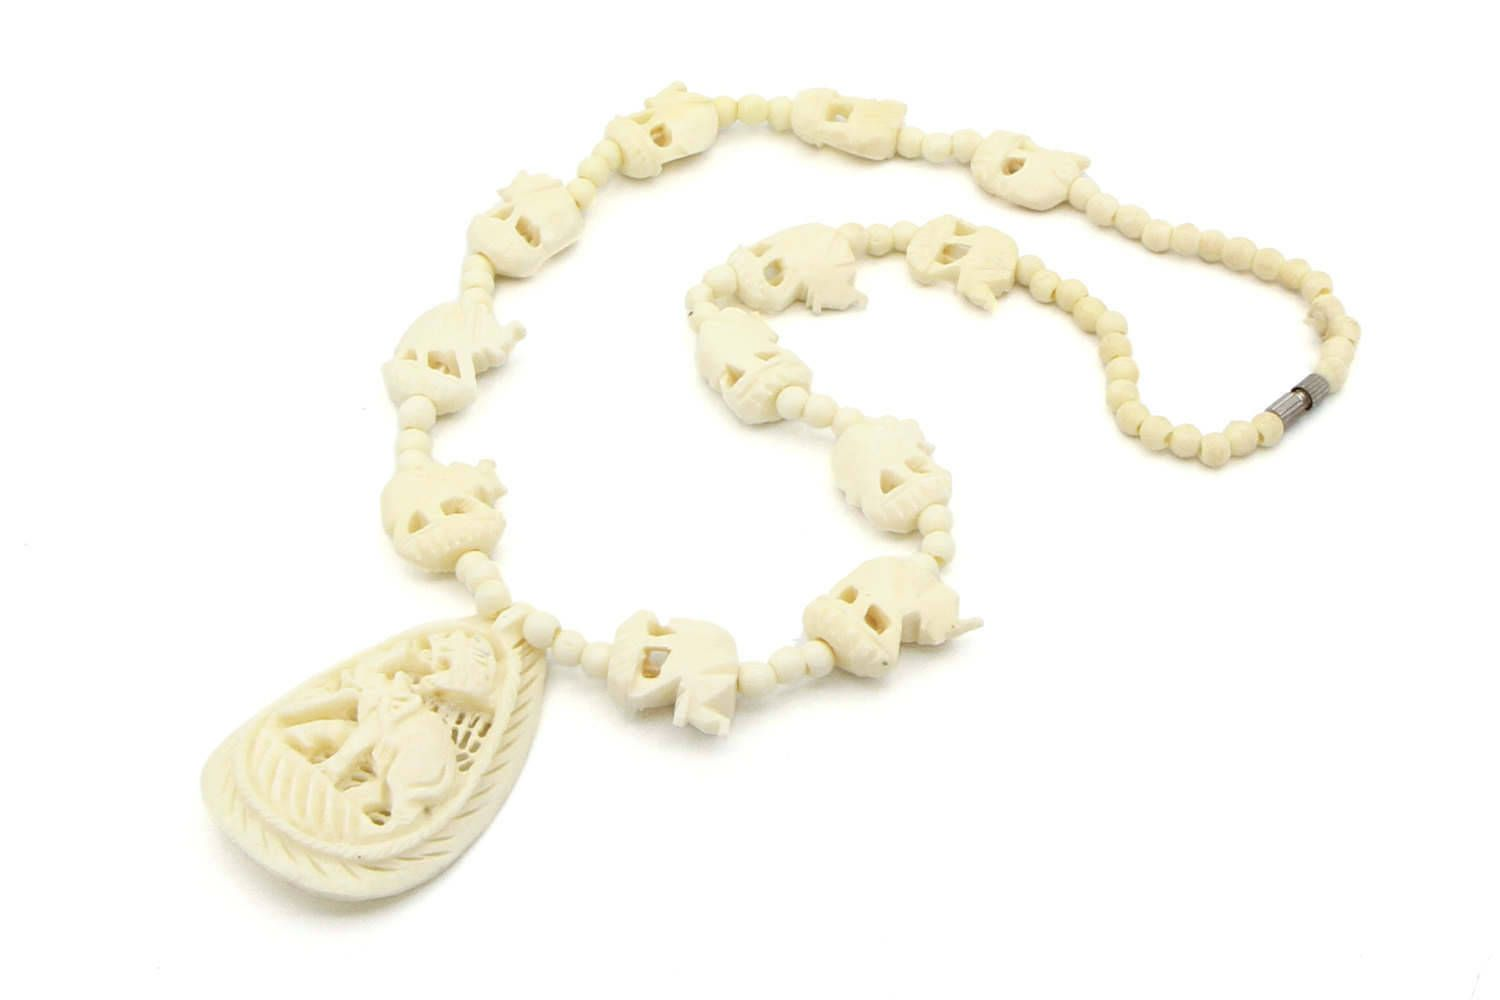 Elephant Bone Necklace Carved Bone Beaded Necklace Indian Pendant Necklace Animal Jewelry Real Bone J Bone Bead Necklace White Chunky Necklace Luck Jewelry